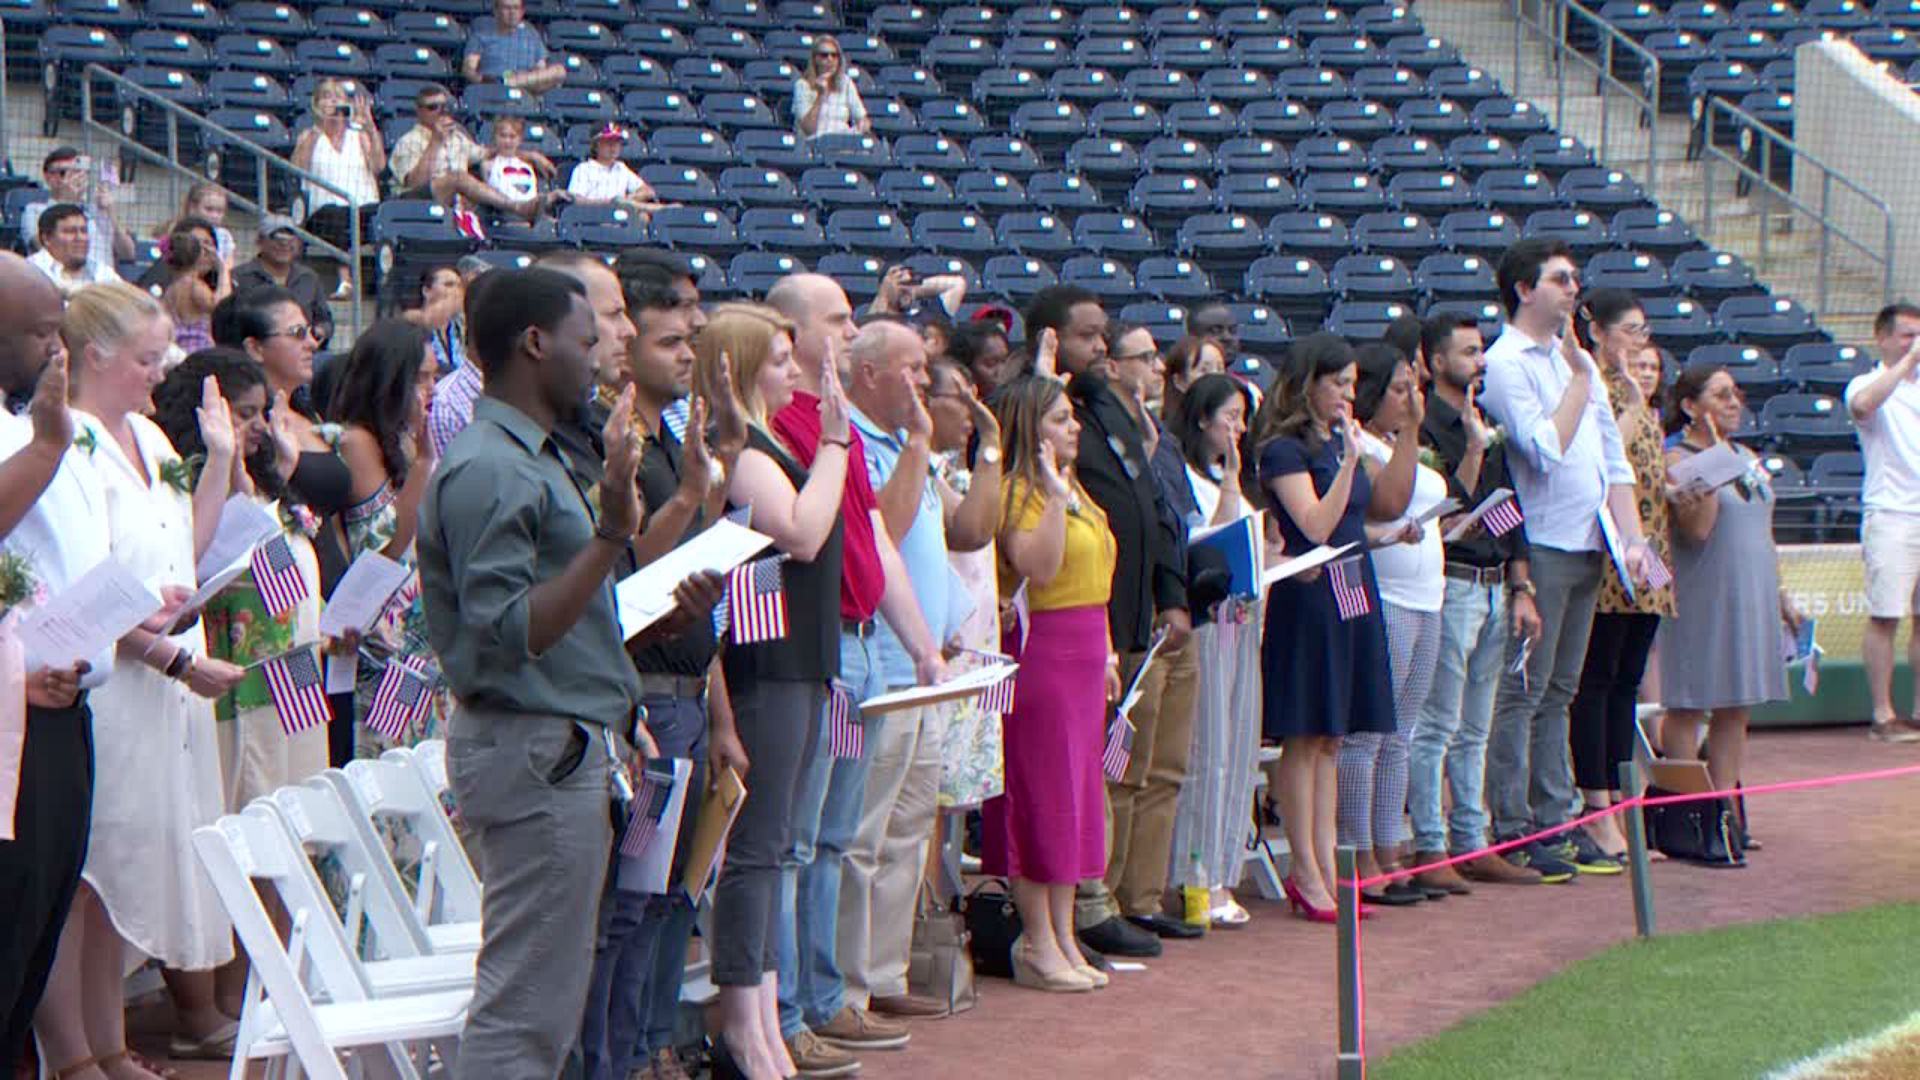 Yard Goats host on-field naturalization ceremony | WTNH com